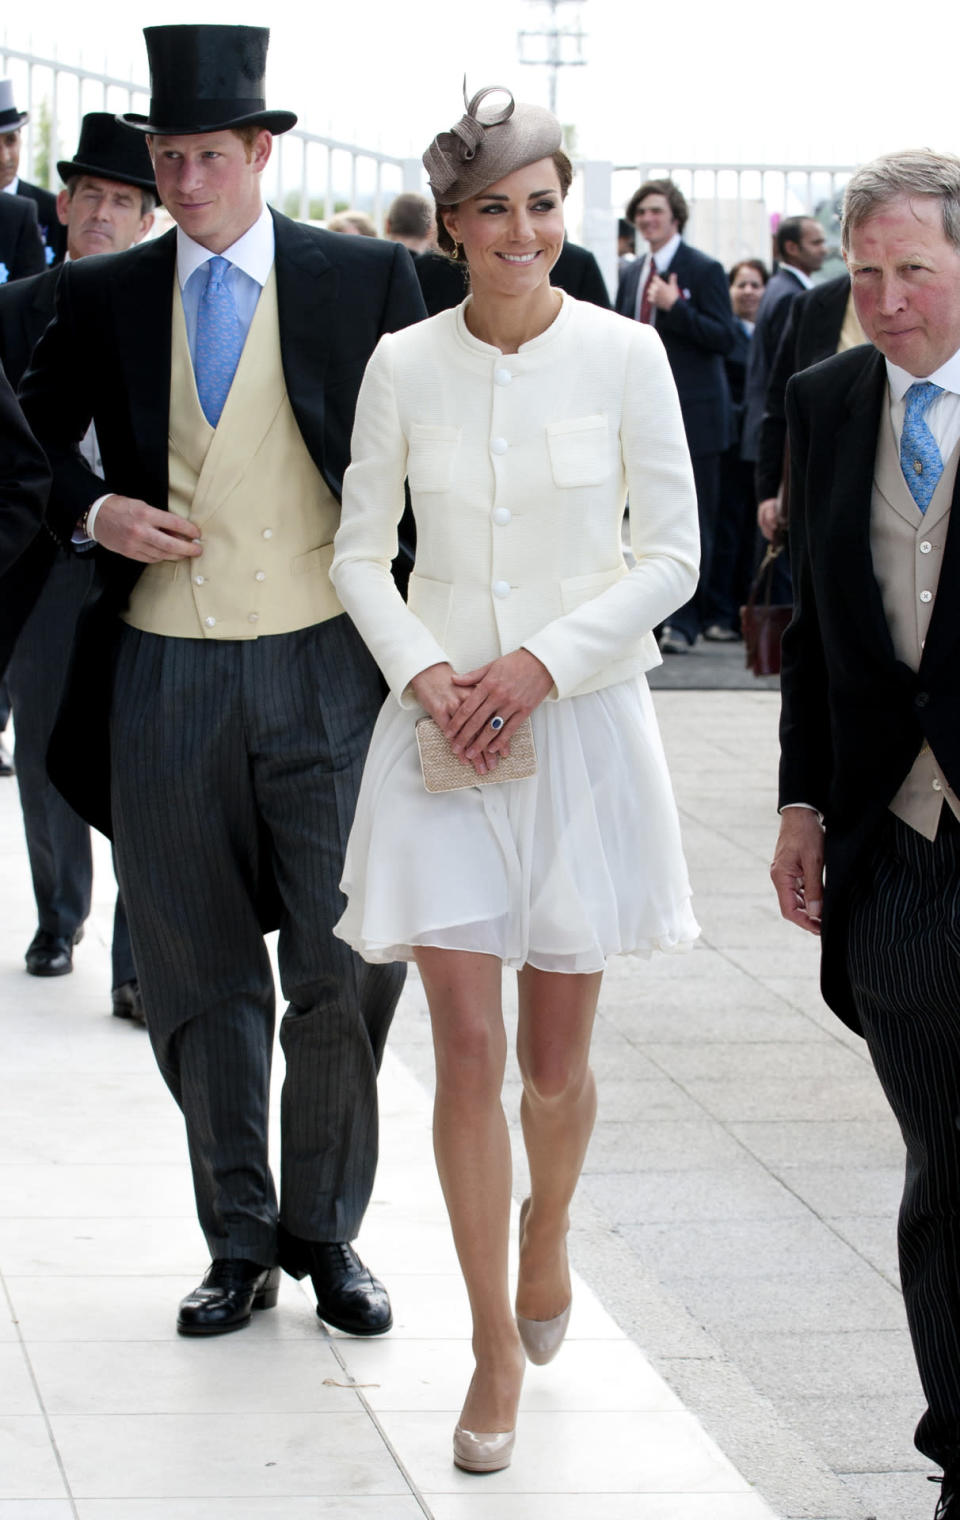 <p>Kate chose a white Reiss look for the Epsom Derby and a white tweed jacket by Joseph. She accessorised with nude heels and clutch by L.K. Bennett.</p><p><i>[Photo: PA]</i></p>